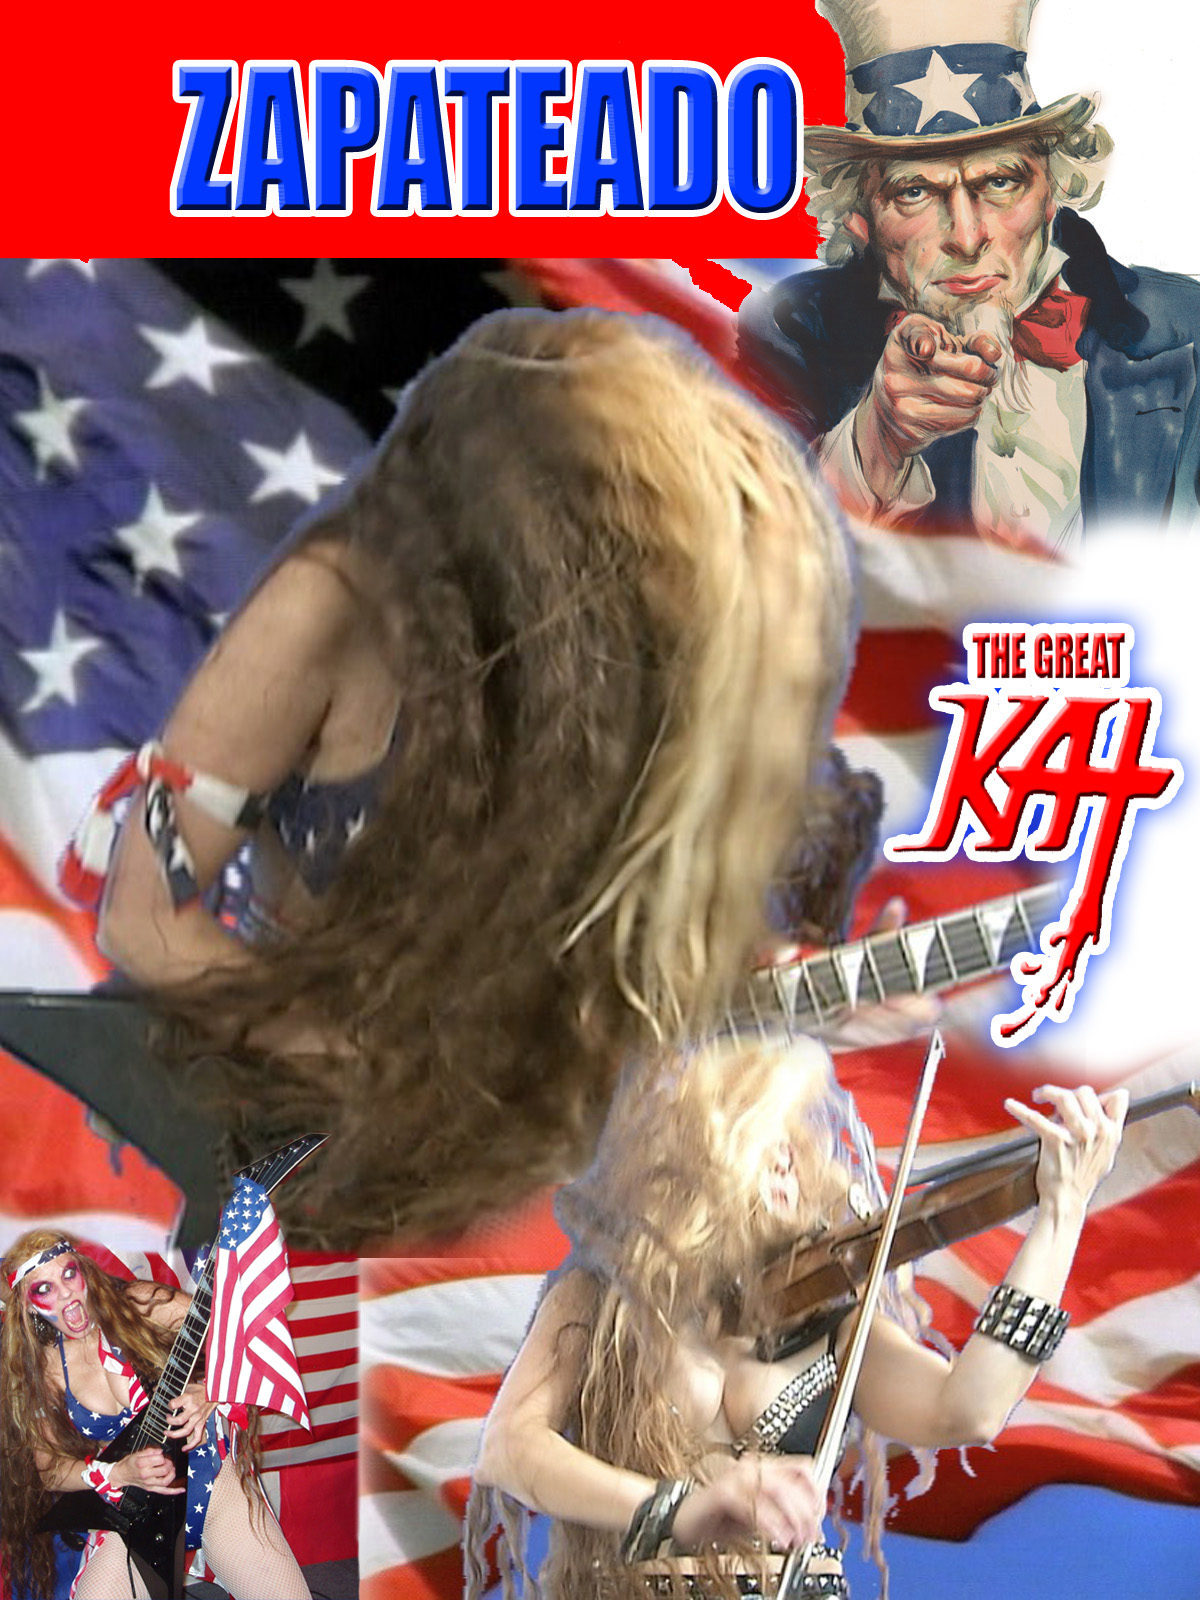 """UNCLE SAM SHREDS ON AMAZON PRIME! The Great Kat SHREDS GUITAR & VIOLIN with UNCLE SAM on """"ZAPATEADO"""" MUSIC VIDEO PREMIERING on AMAZON PRIME! WATCH at: https://www.amazon.com/dp/B079MGLFZJ  Sarasate's Spanish dance Zapateado features The Great Kat's phenomenal Classical Juilliard violin virtuosity & guitar shredding. The world famous Uncle Sam poster. U.S. flags and Americana abound, as well as a commercial break with Uncle Sam sponsoring The Great Kat's shredfest. George Washington, Declaration of Independence, Statue of Liberty & Great Kat's All-Male Hunk Band appear. Wild!!"""